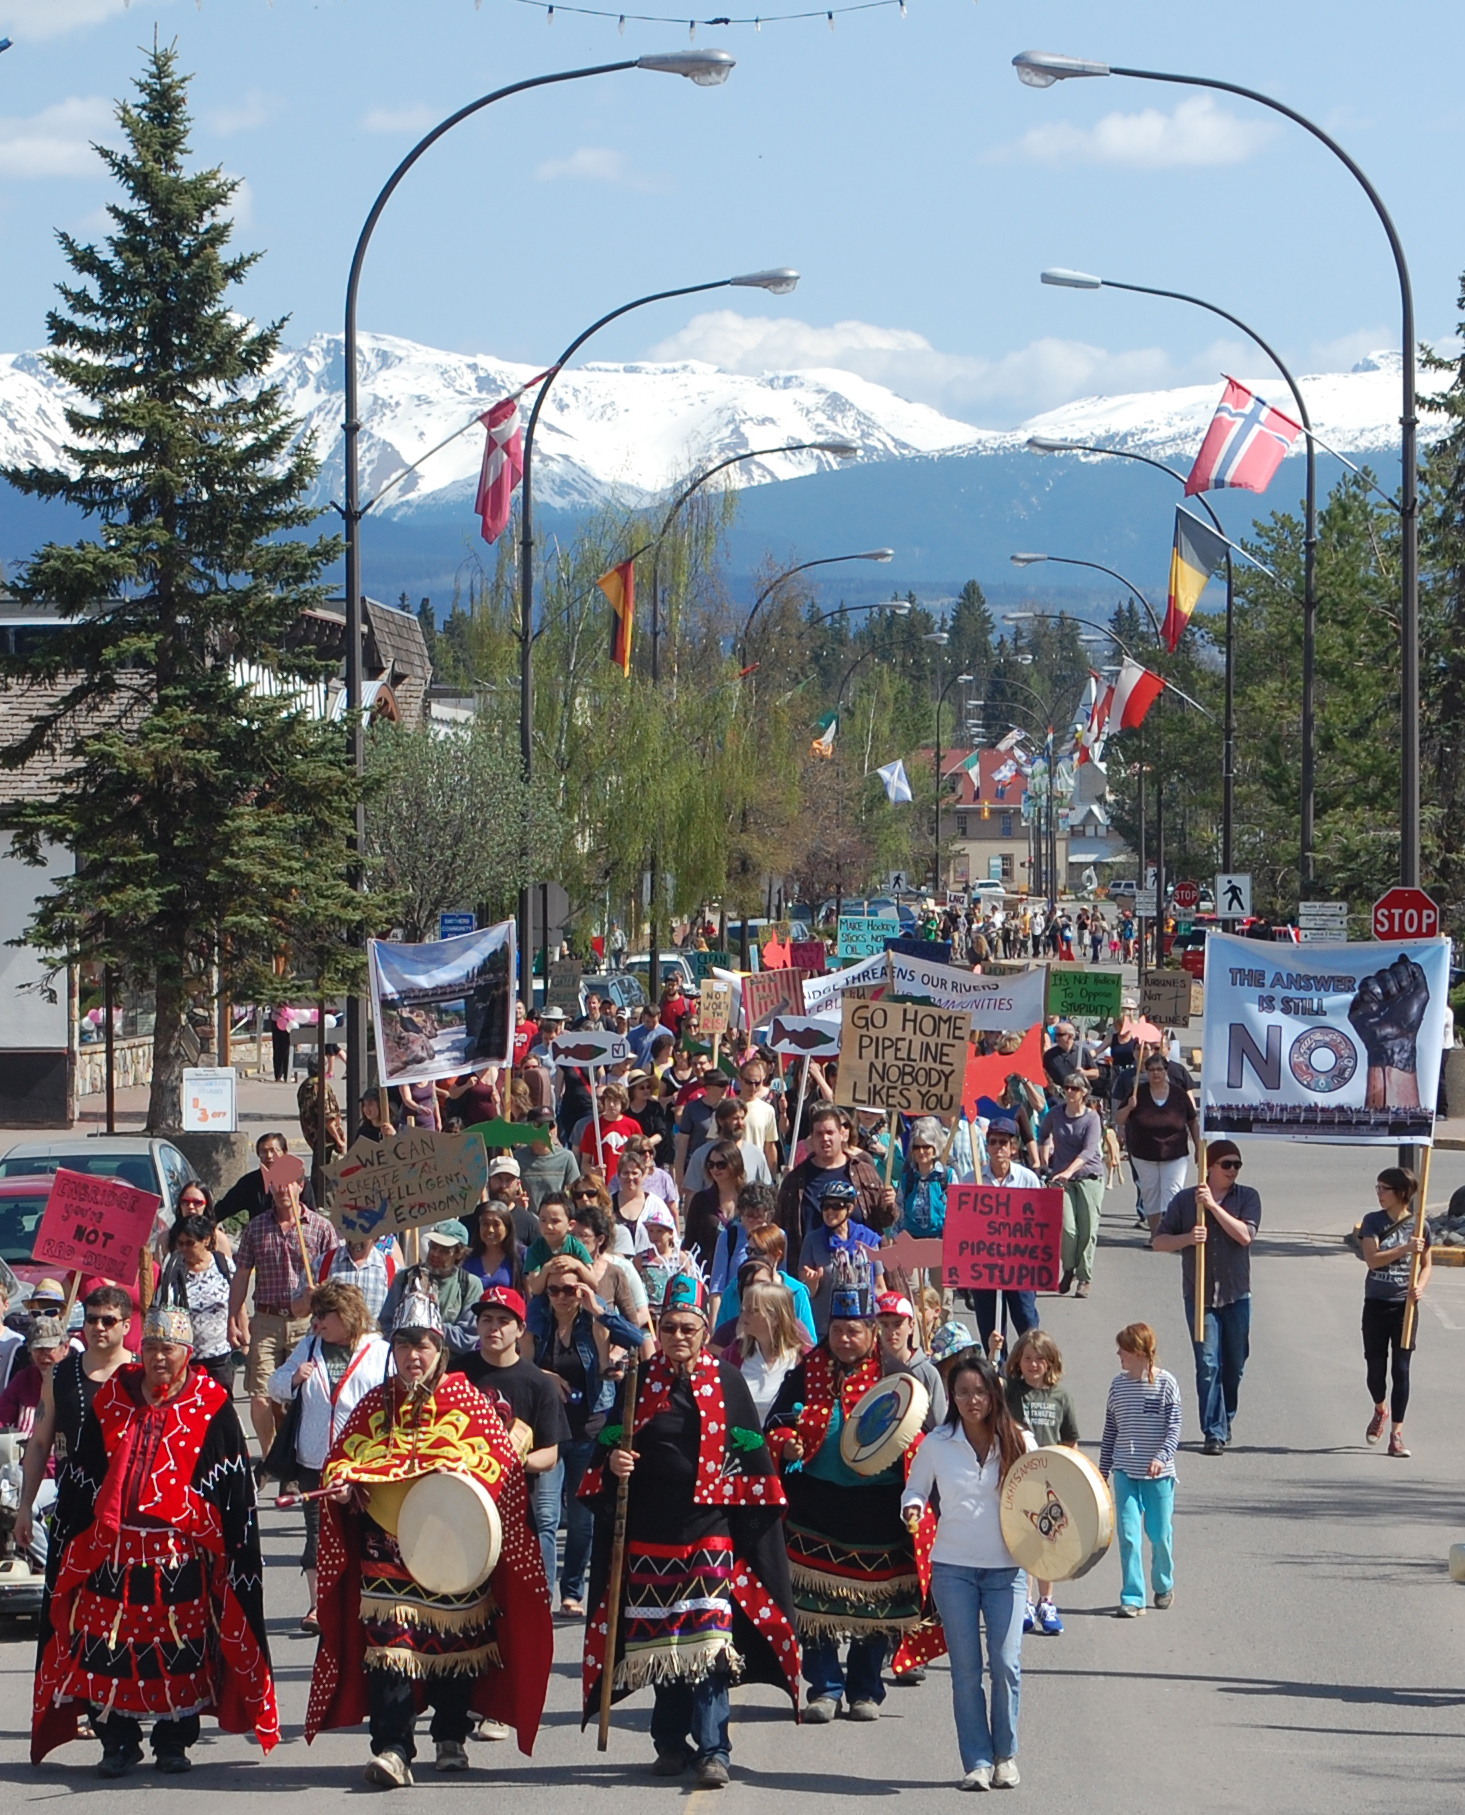 Leadnow Canada, Wet'suwet'en hereditary chiefs (bottom left corner) lead protest in Smithers, BC, 2014. Photo Credits to: Office of the Wet'suwet'en/Francois Depey